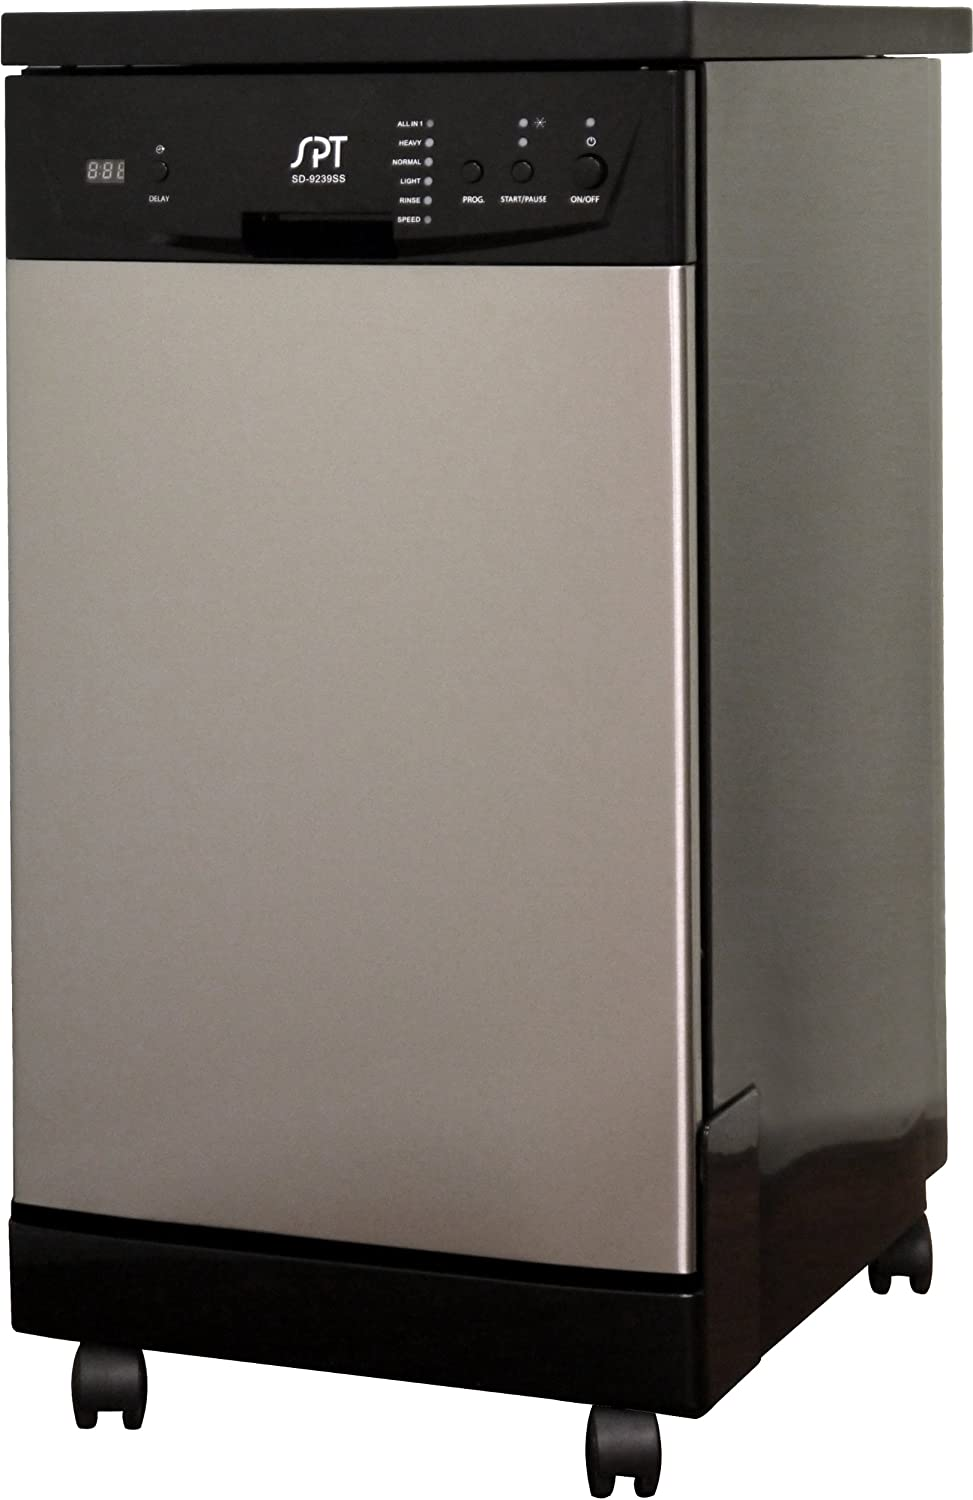 SD-9241SS1: 18″ Energy Star Portable Dishwasher